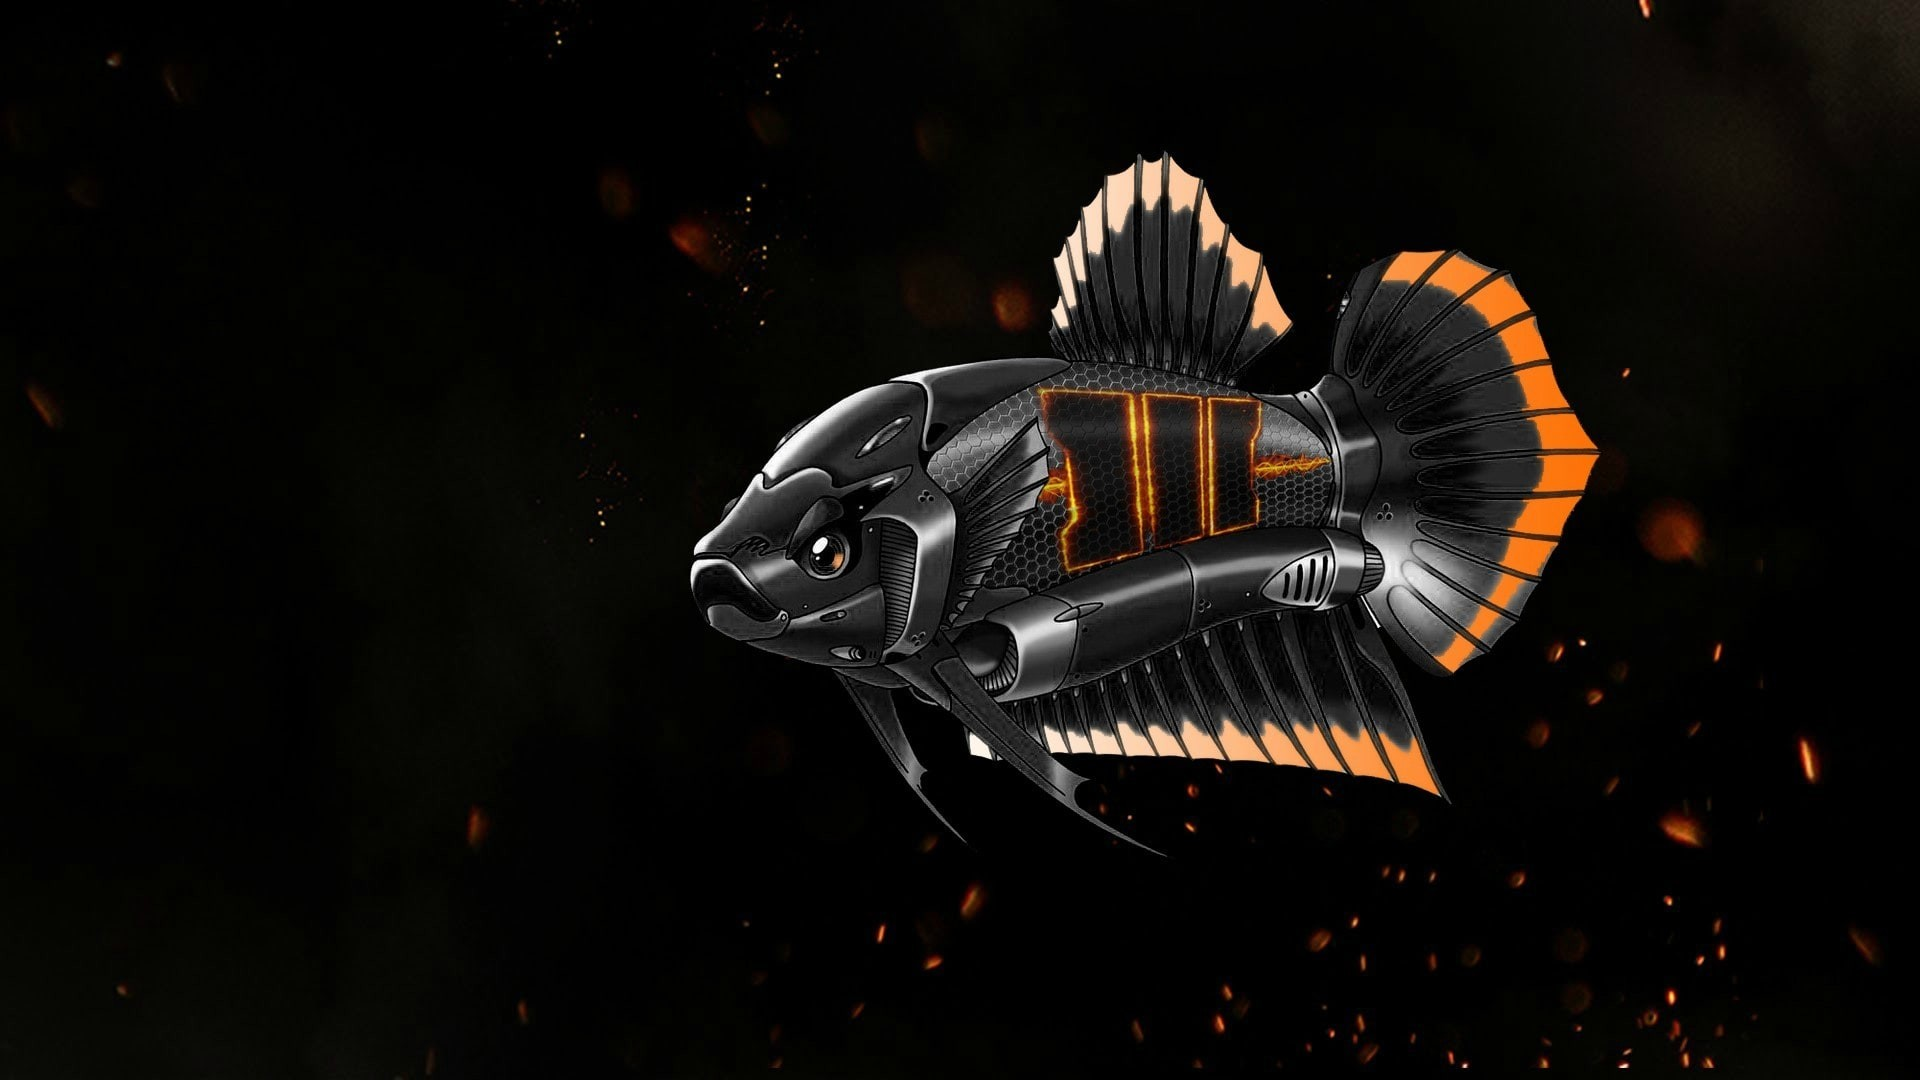 … Call of Duty: Black Ops 3 Full hd wallpapers